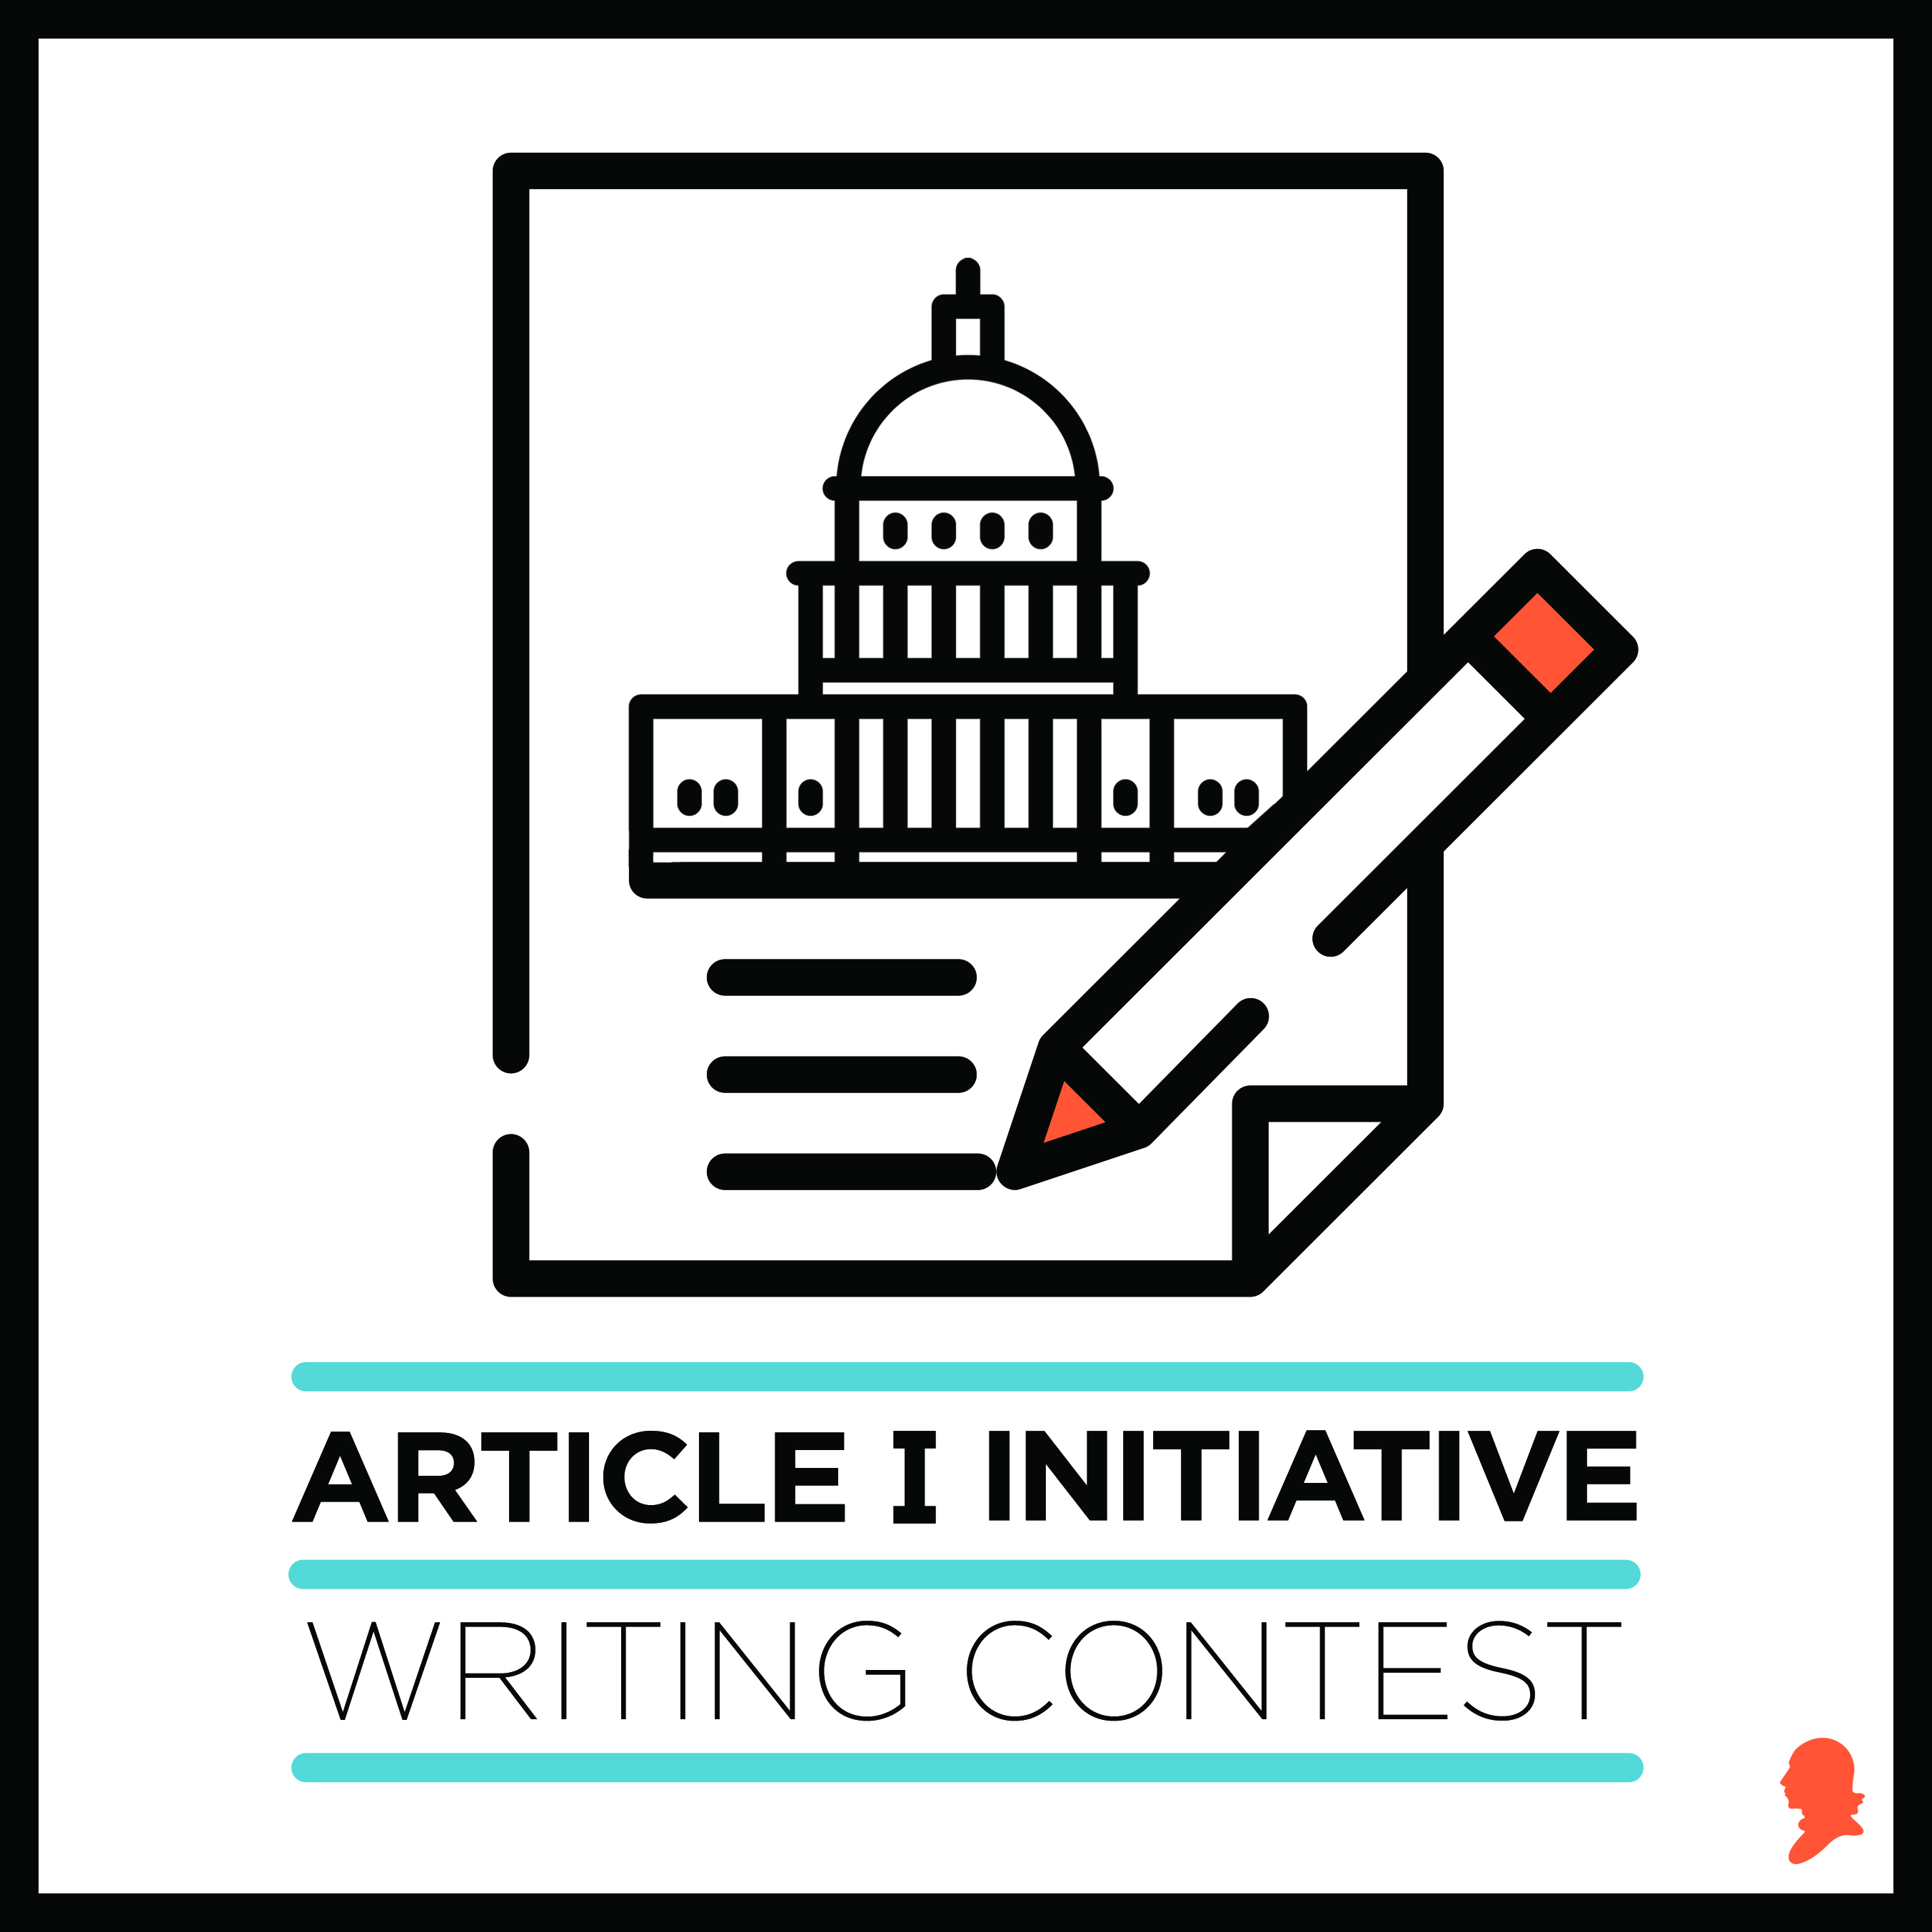 2019 Article I Writing Contest Winners Announced